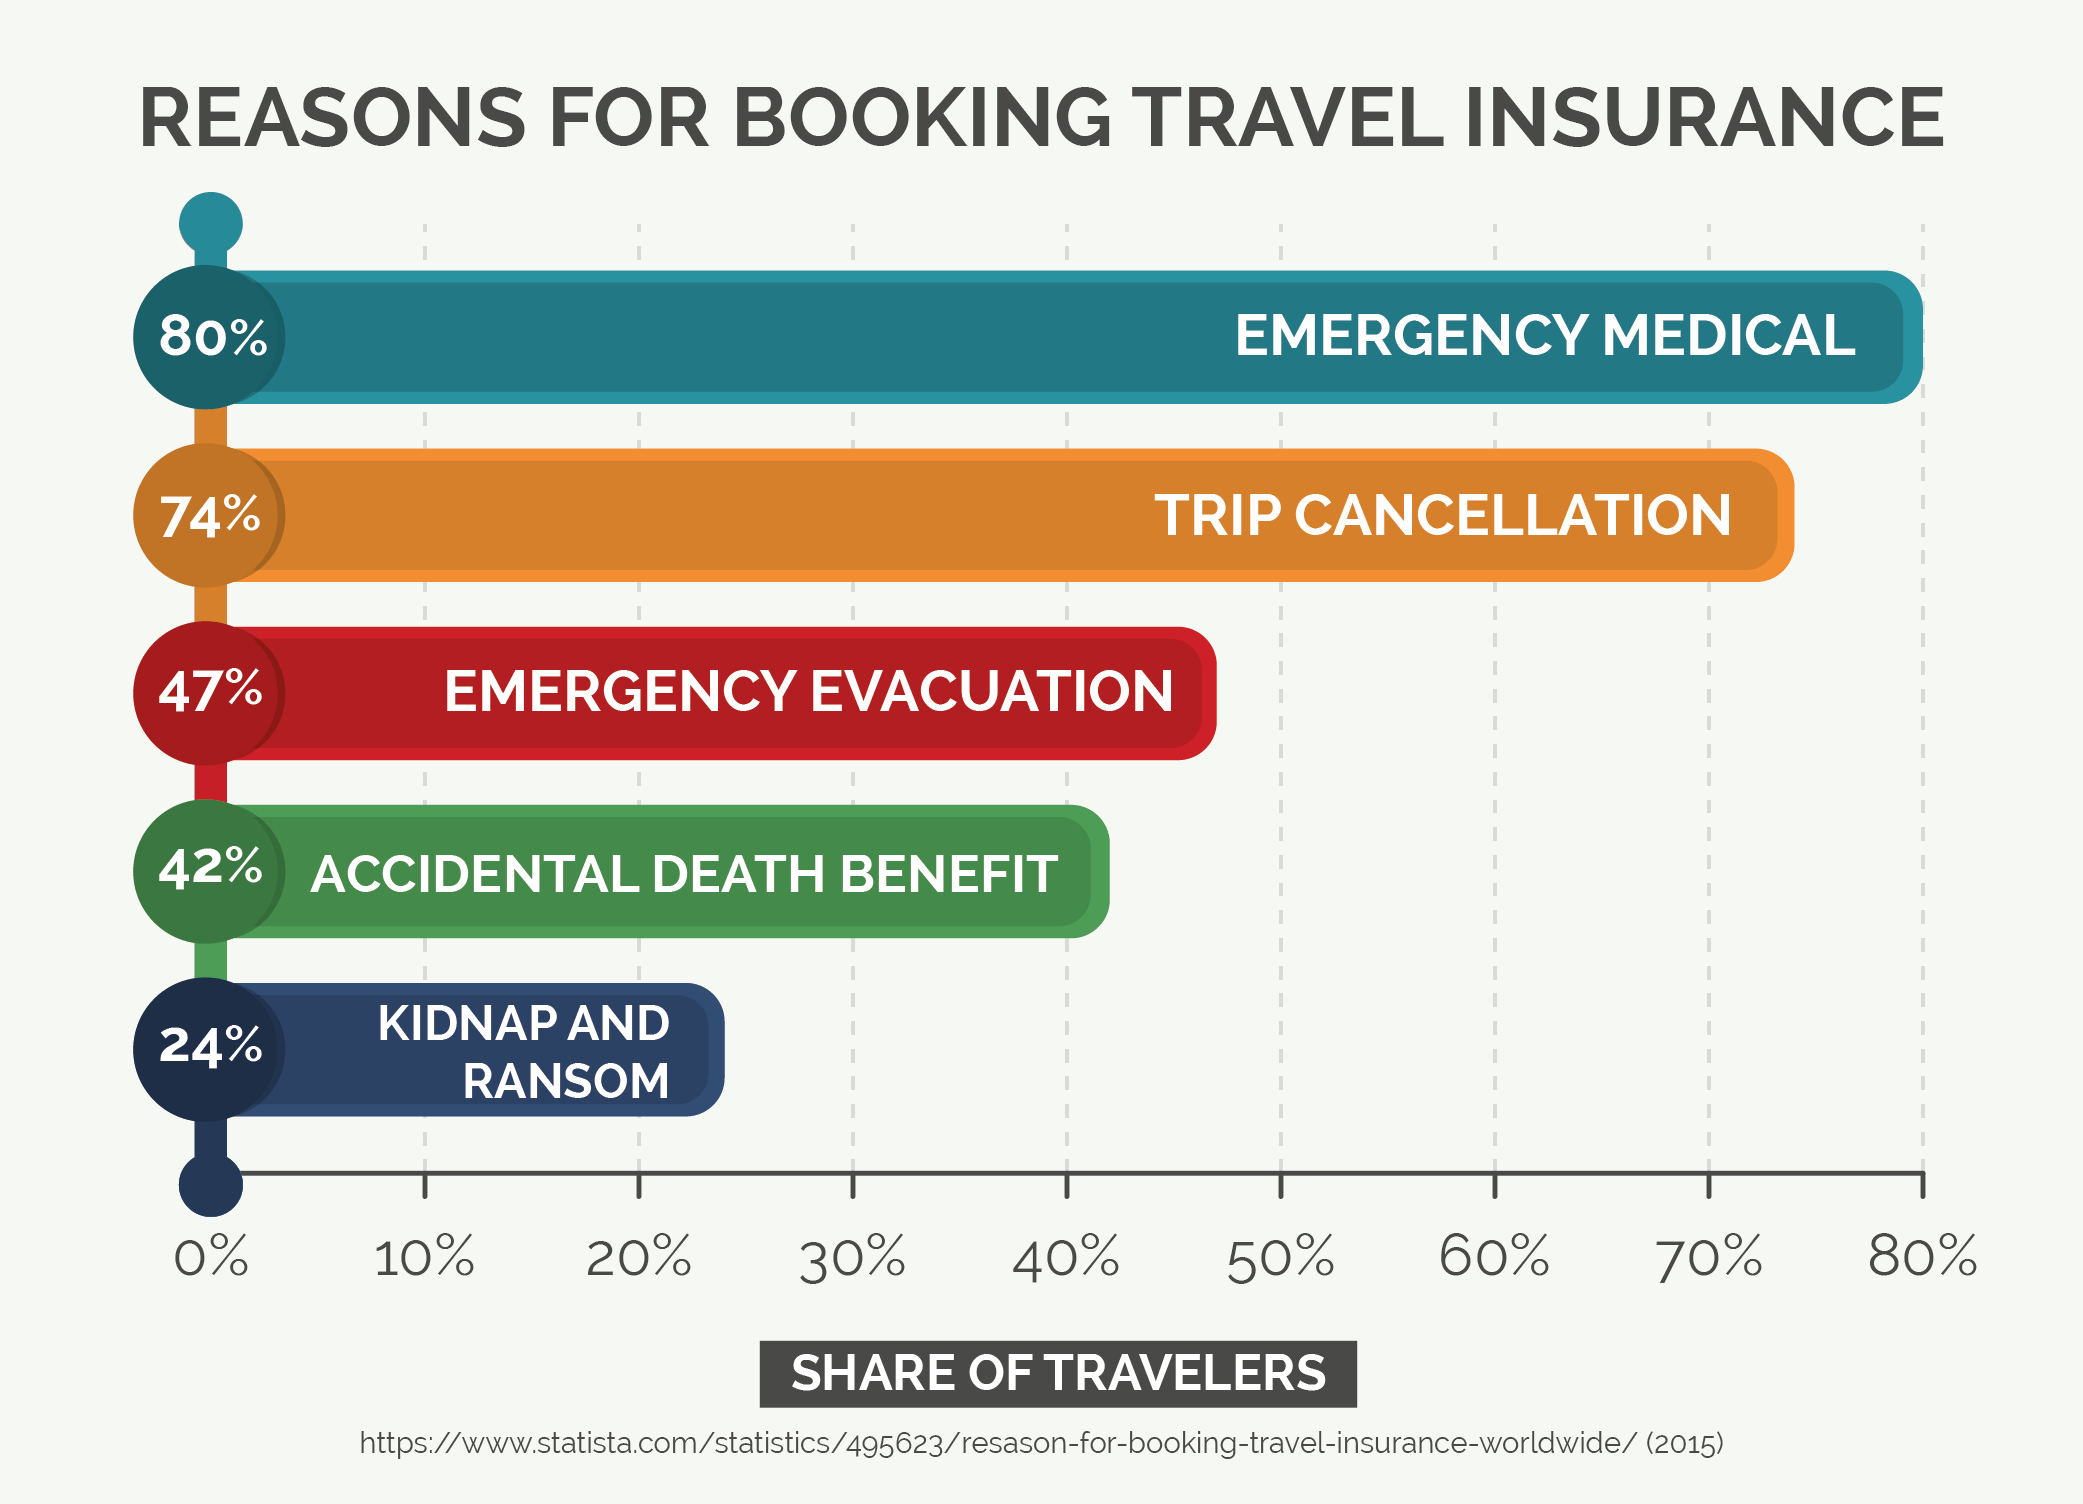 Reasons for Booking Travel Insurance